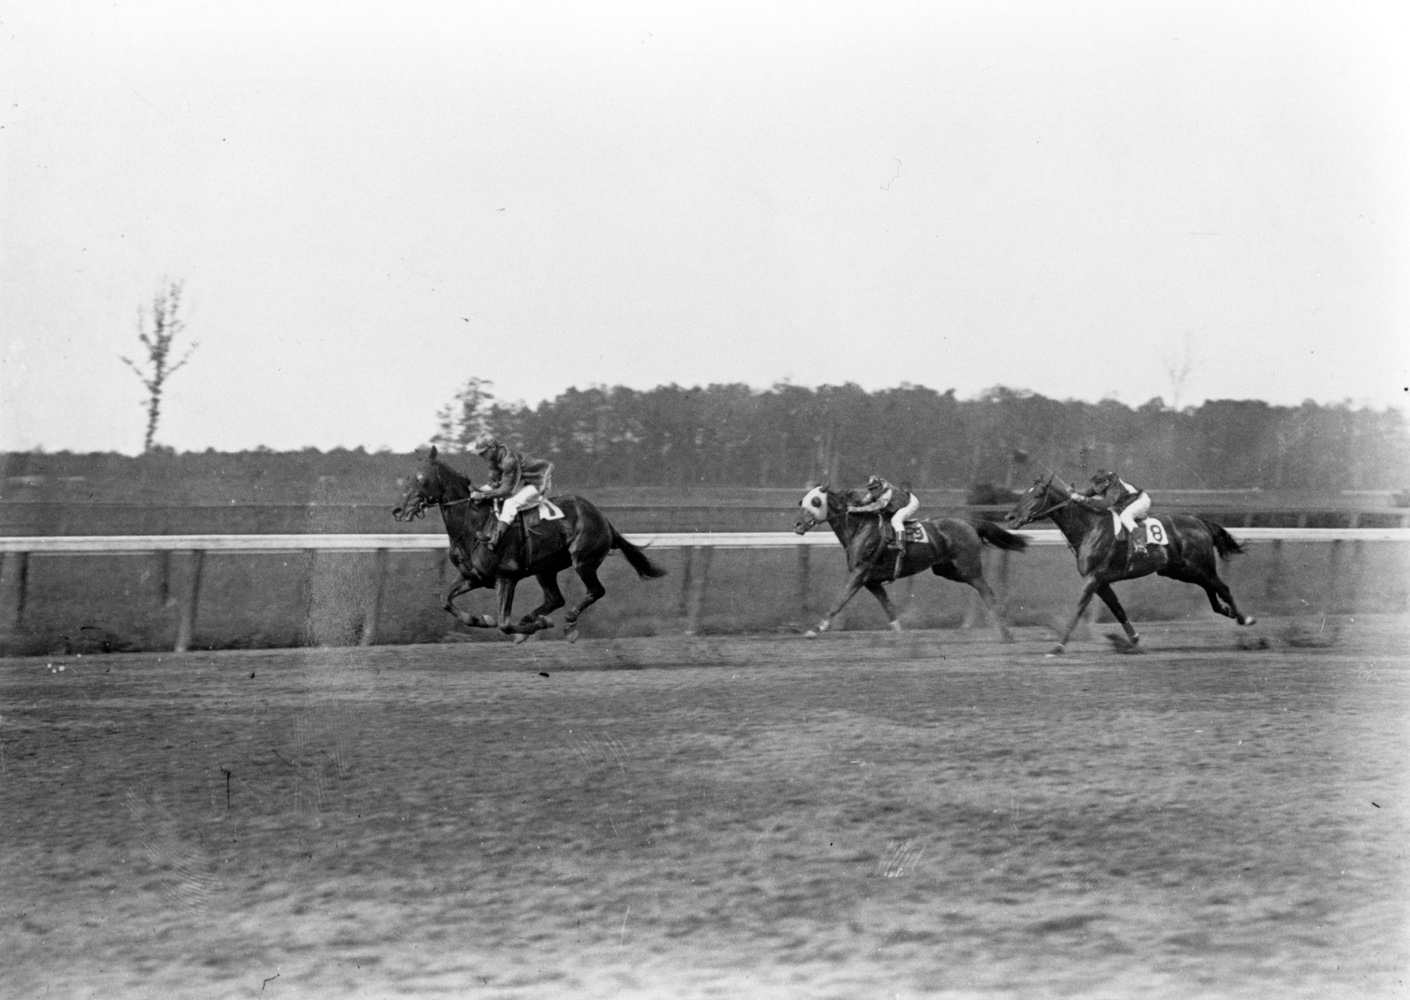 Roseben (J. McIntyre up) winning a race at Belmont Park in May 1909, his final career win (Keeneland Library Cook Collection/Museum Collection)